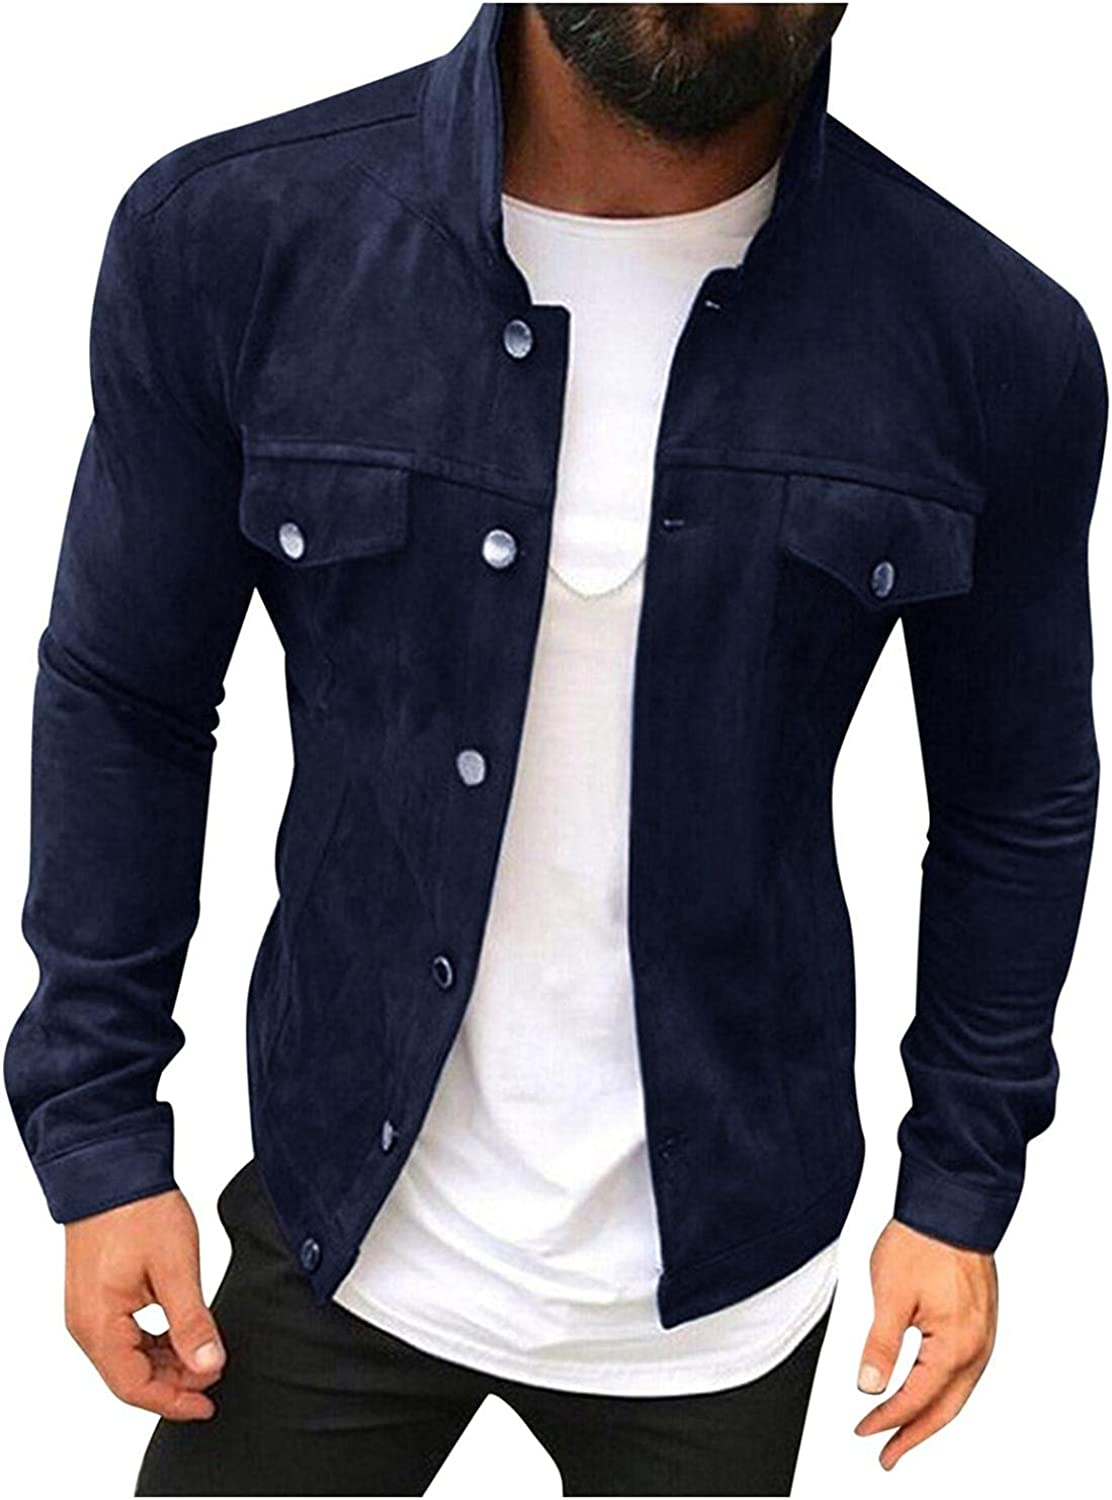 Mens Casual Stylish Button Down Jacket Shirts Lightweight Slim Fit Outerwear Big & Tall Fashion Winter Trench Coat